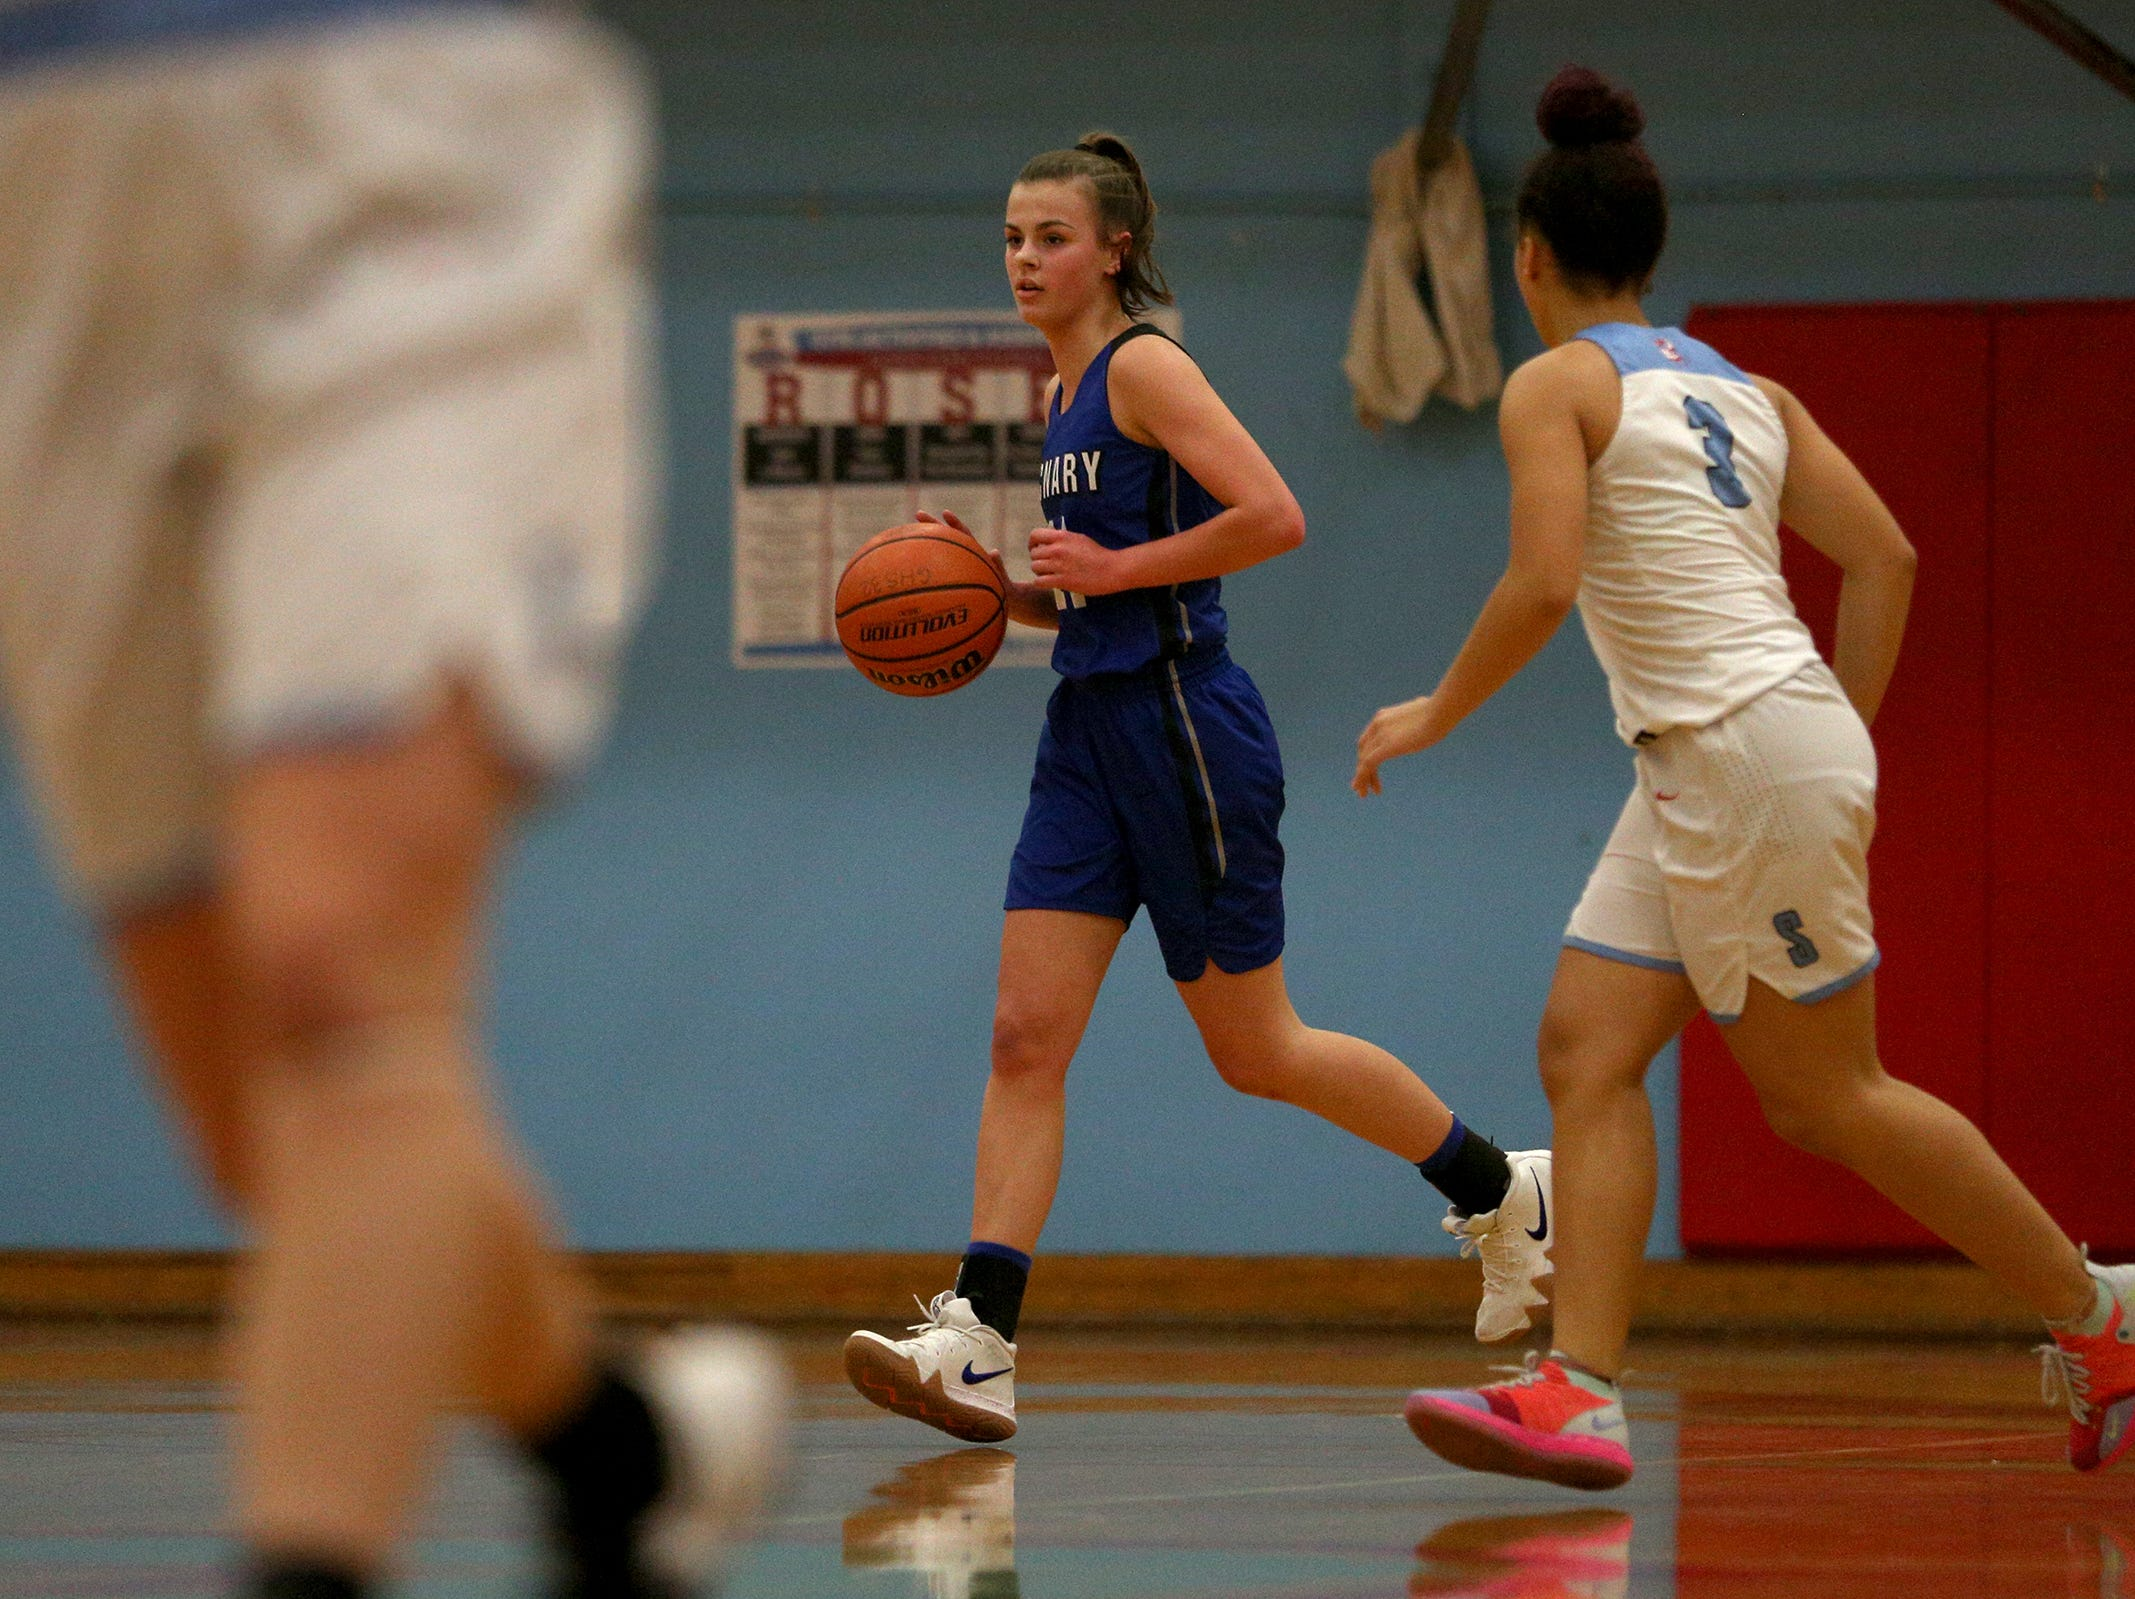 McNary's Leah Doutt (14) dribbles during the South Salem High School girls basketball game against McNary High School in Salem on Thursday, Jan. 31, 2019.